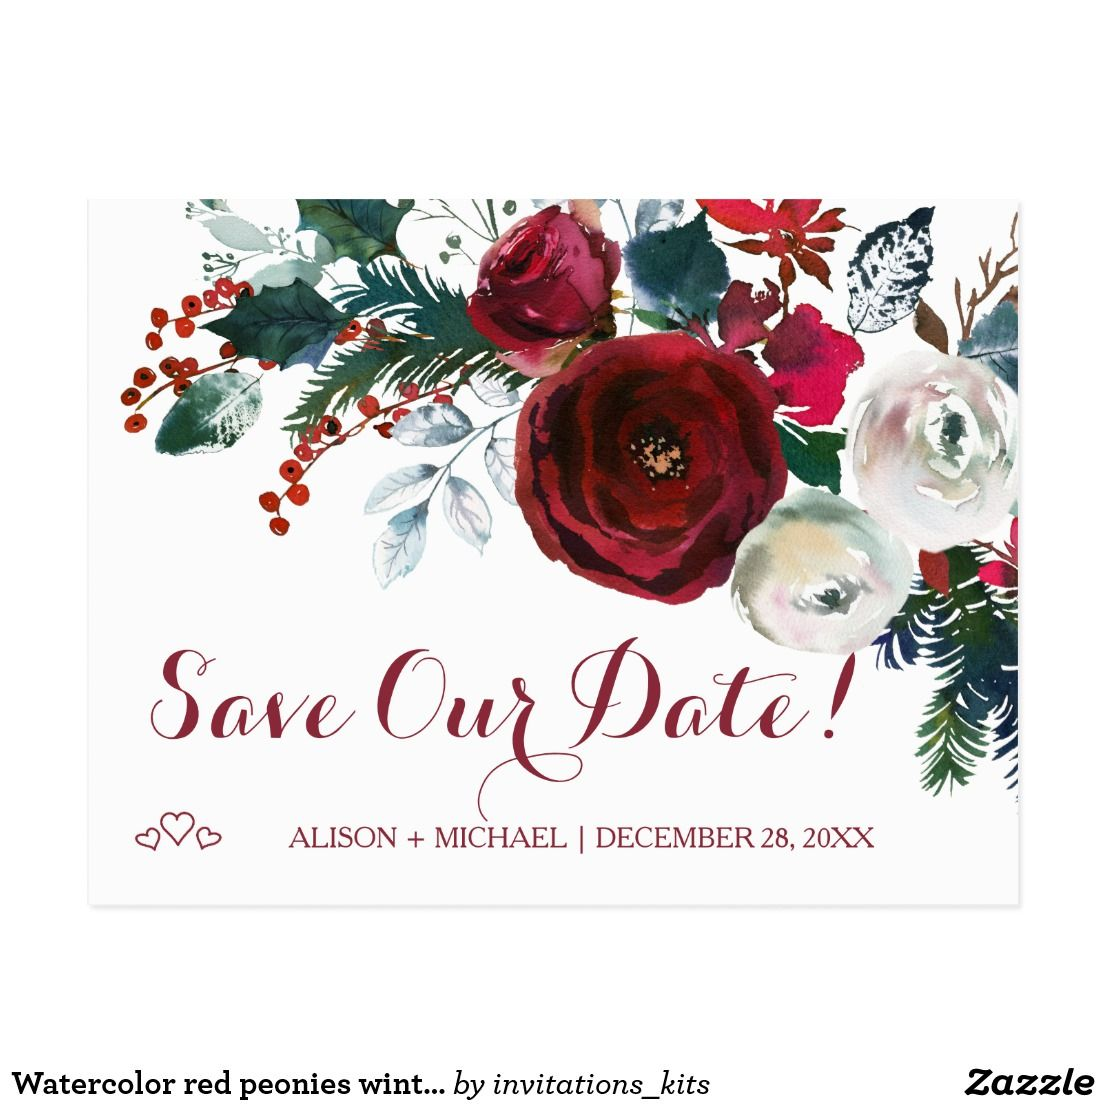 Watercolor red peonies winter wedding save date announcement ...